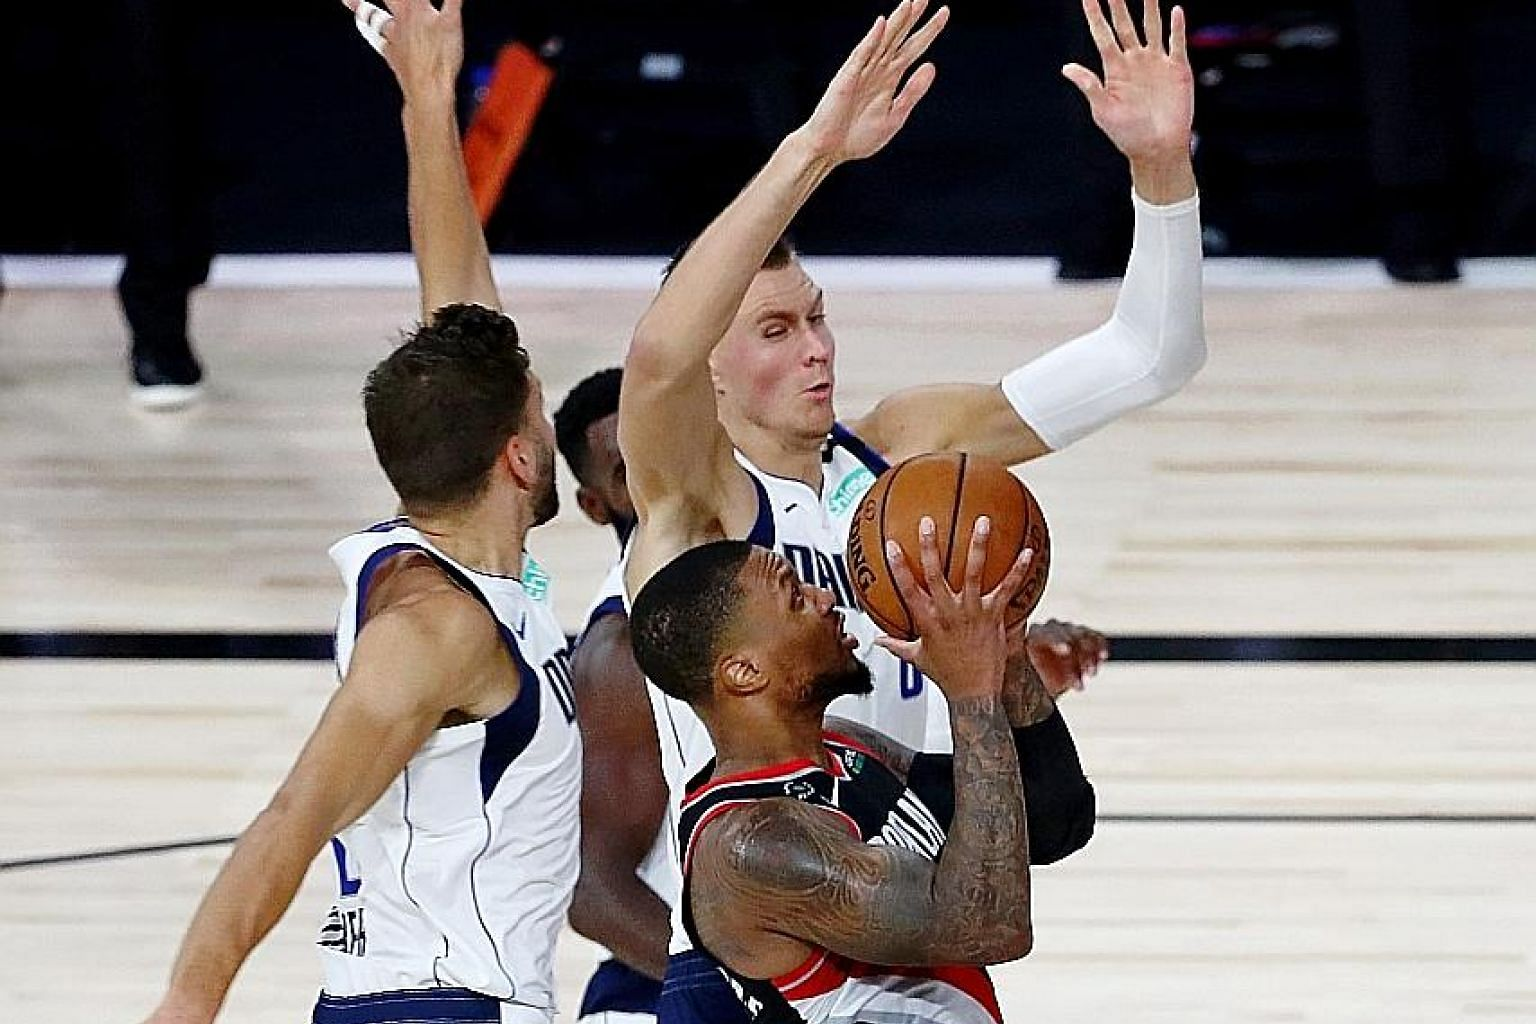 Portland guard Damian Lillard going for a shot despite the close attention of Dallas forward Maxi Kleber (left) and other players. The Blazers won 134-131.